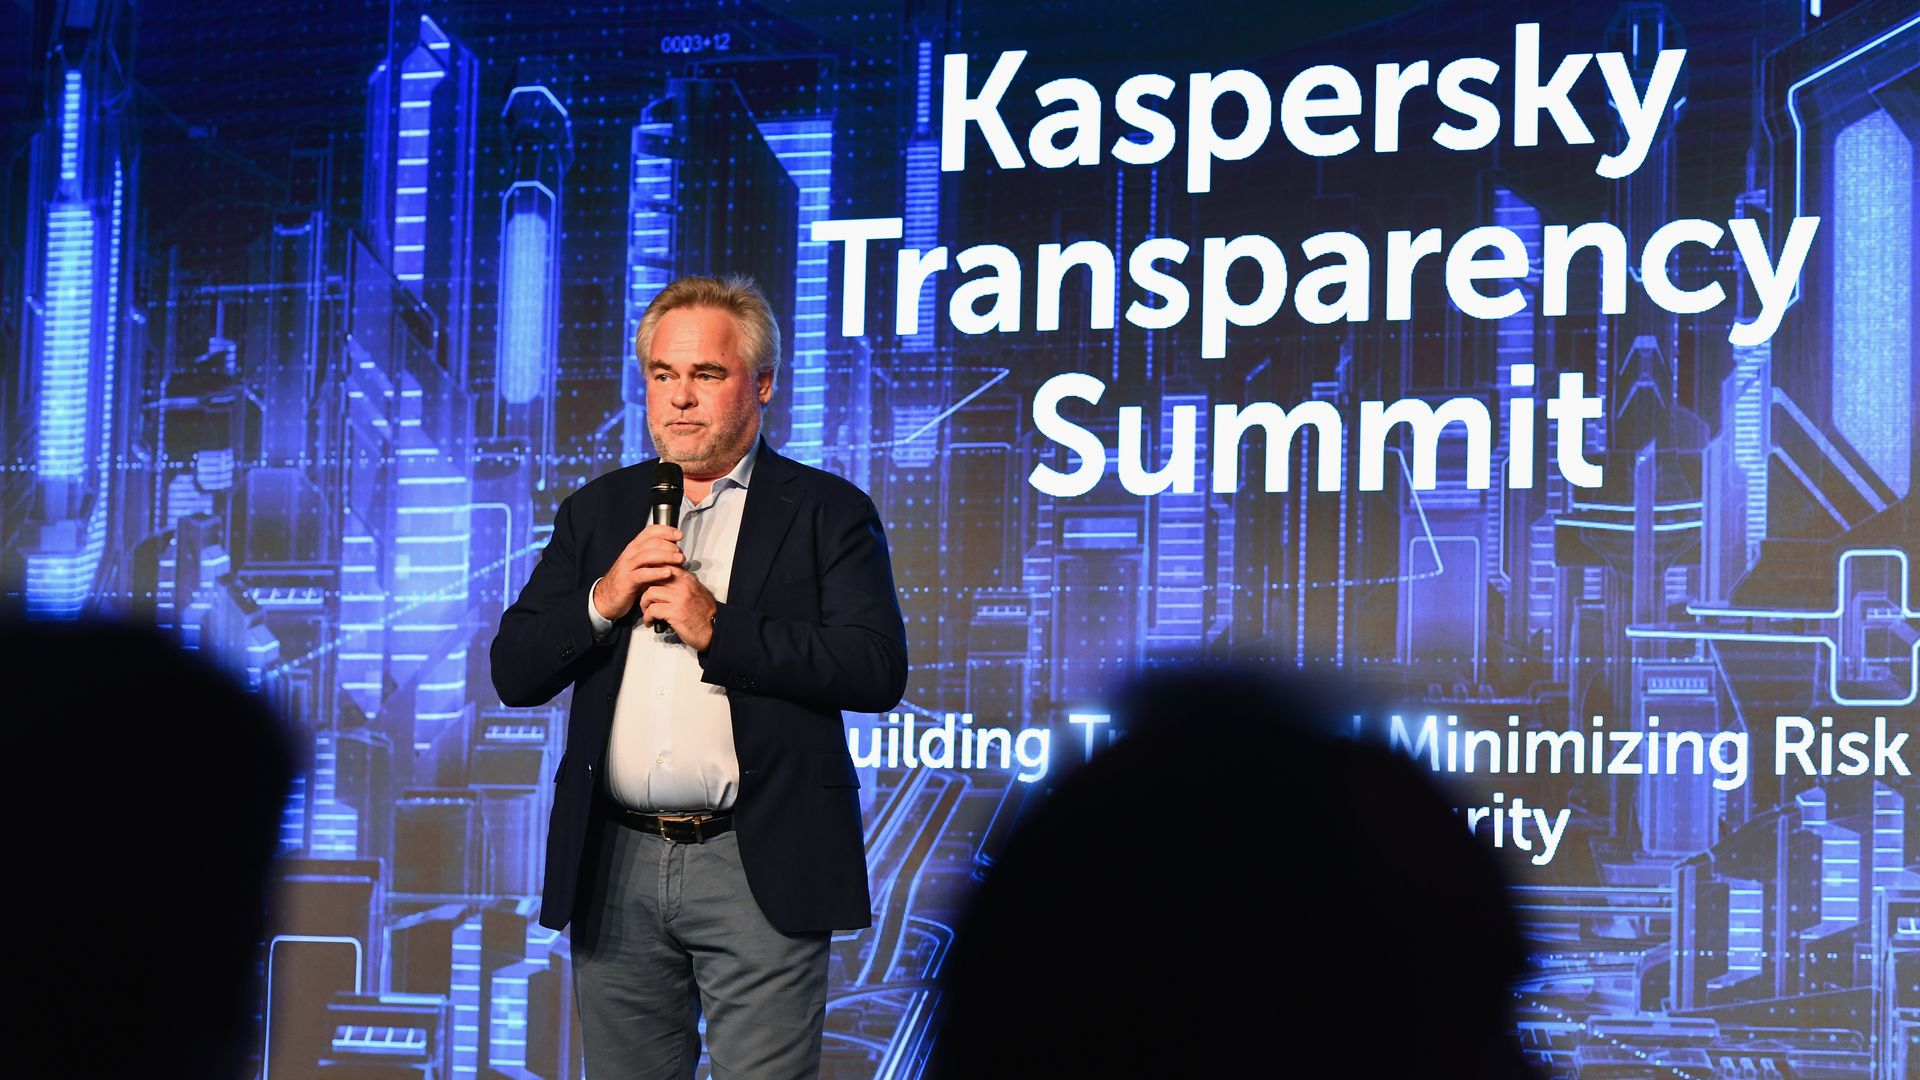 Eugene Kaspersky talking on stage